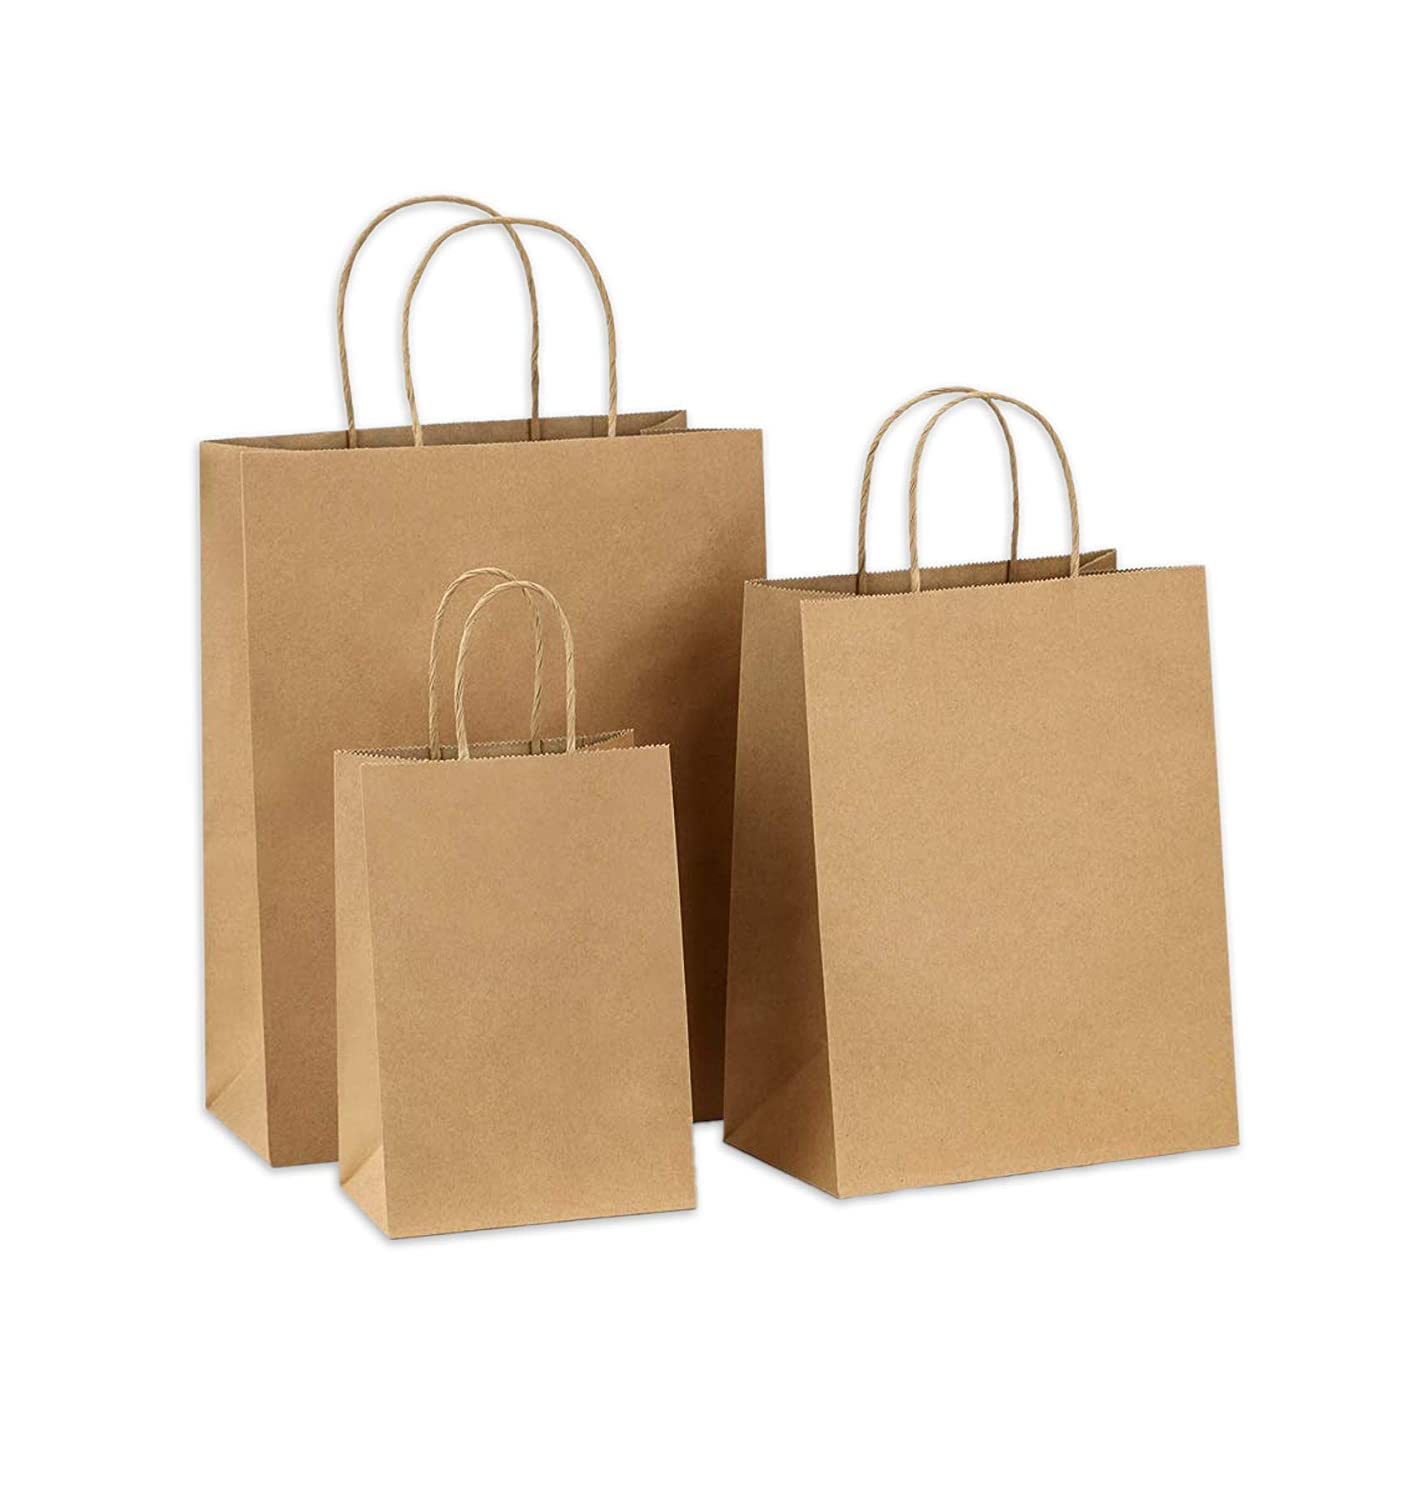 Galaxe international Paper Bag (14 x 16 x 4 Inch) Pack of 50: Amazon.in:  Office Products